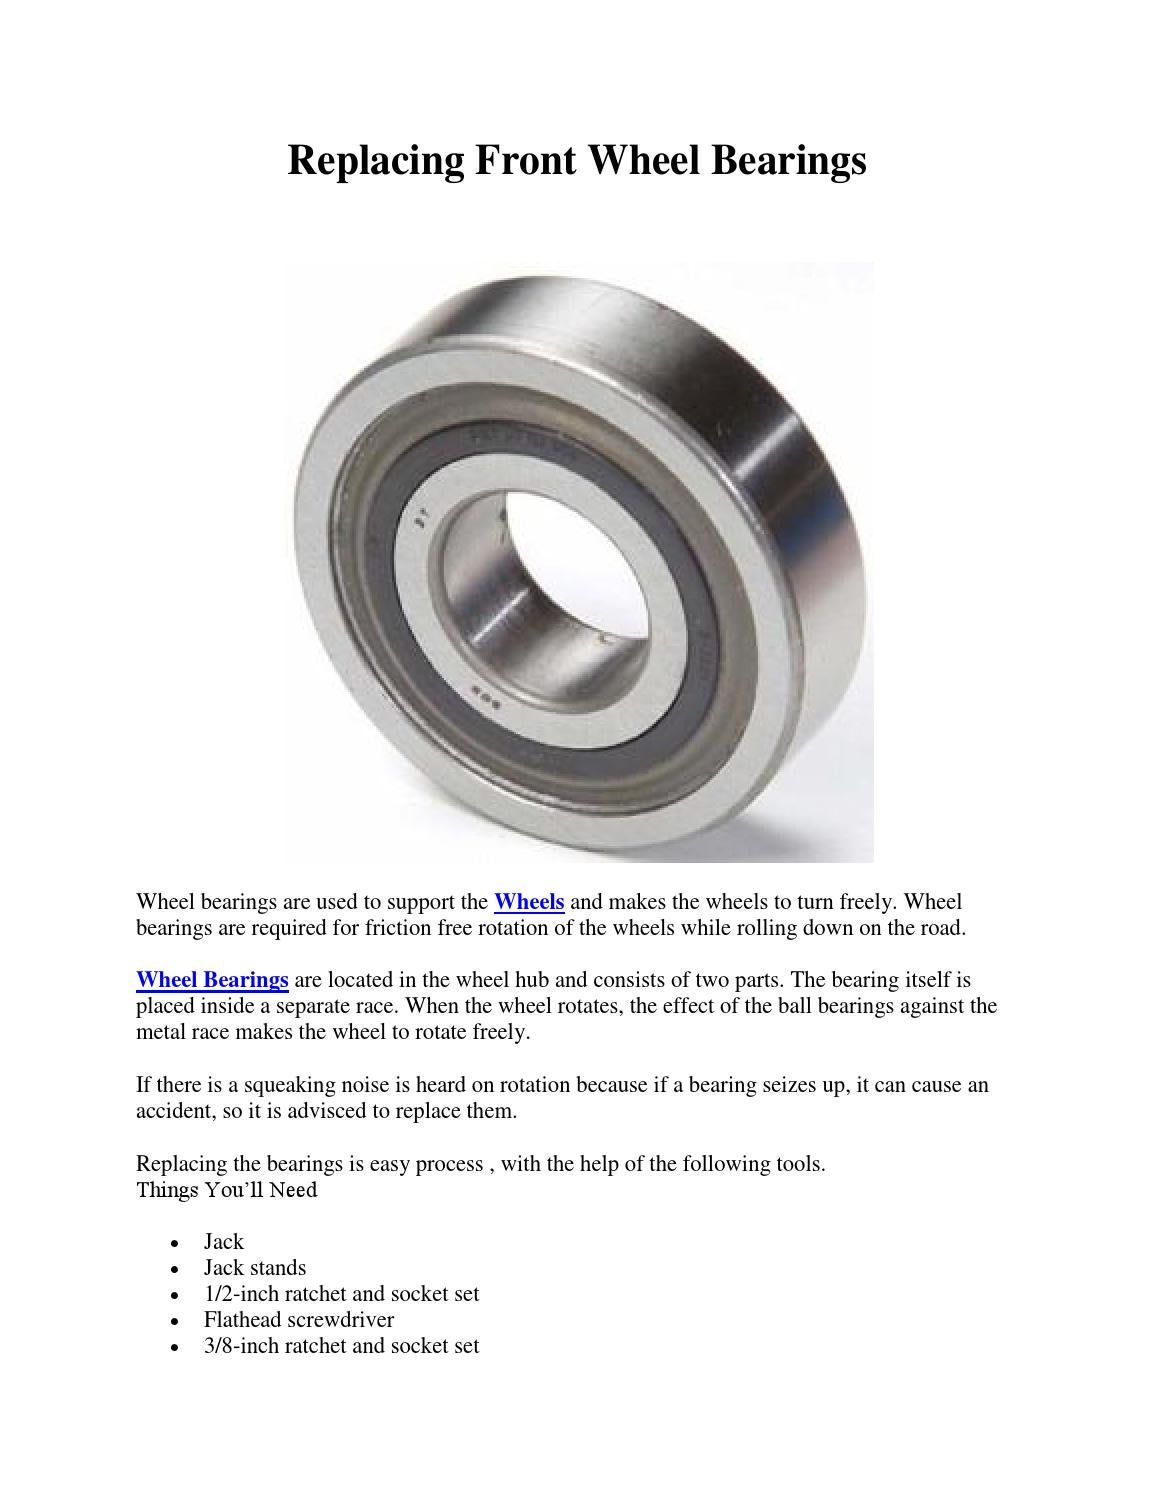 Replacing front wheel bearings by tapsprasad - issuu